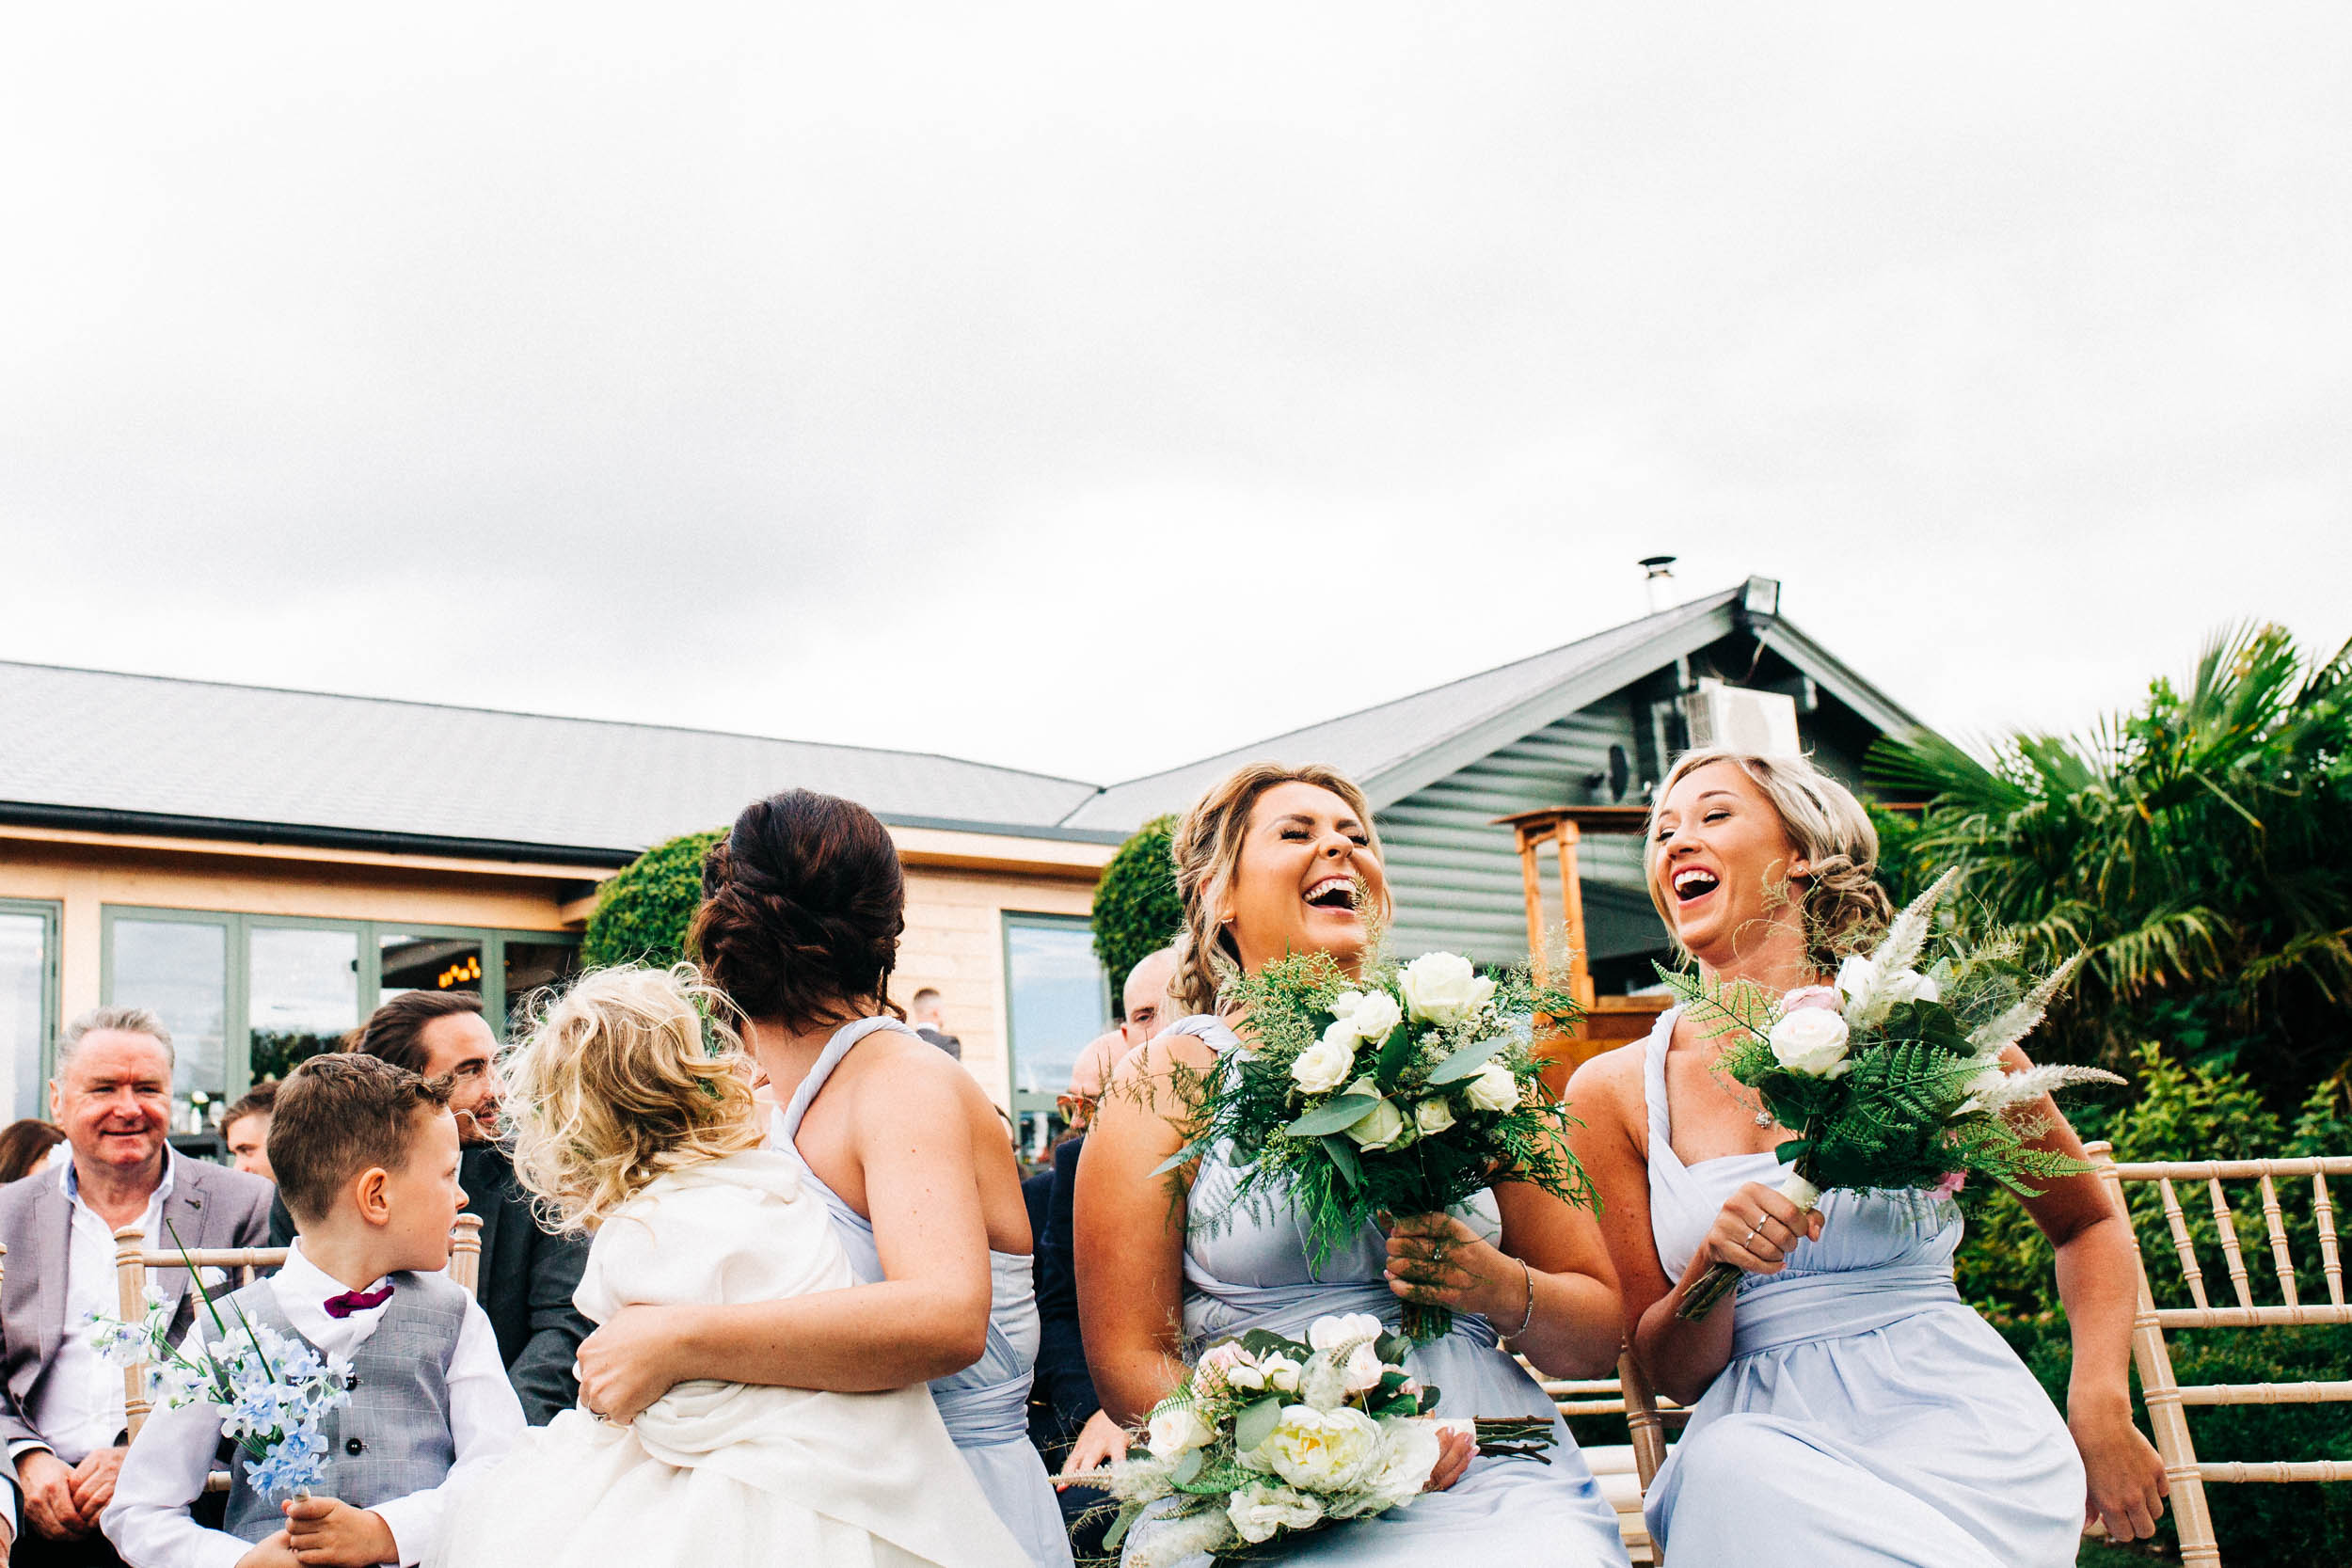 Alex_Sedgmond_Photography-SouthWalesWeddingPhotography-Wedding-Photographer-Cardiff-Chester-Pryors Hayes Golf Club-chesire-weddingphotography-fionaandvince-41.jpg